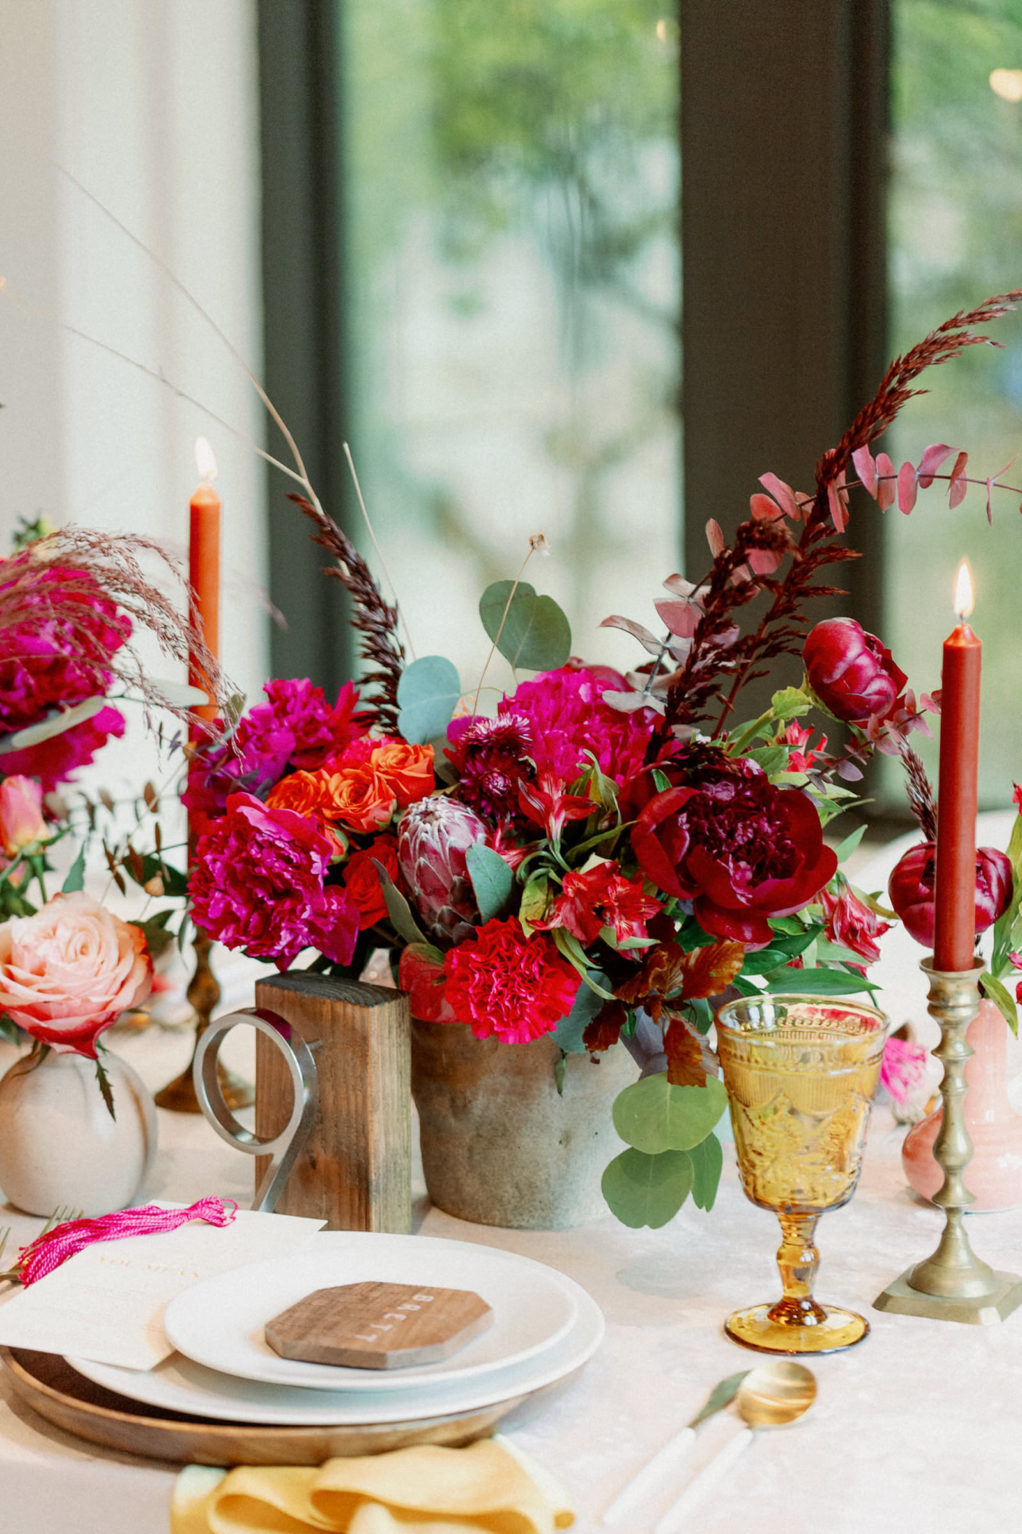 Whimsical and Colorful Wedding Reception Tablescape Decor, Fuschia and Pink, Red Low Floral Centerpiece, Eucalyptus, Tall Orange and Red Candlesticks, Yellow Vintage Glassware, Wooden Charger, Wood Geometric Shape Place Card   Tampa Bay Wedding Photographer Dewitt for Love   Linen Rentals Kate Ryan Event Rentals